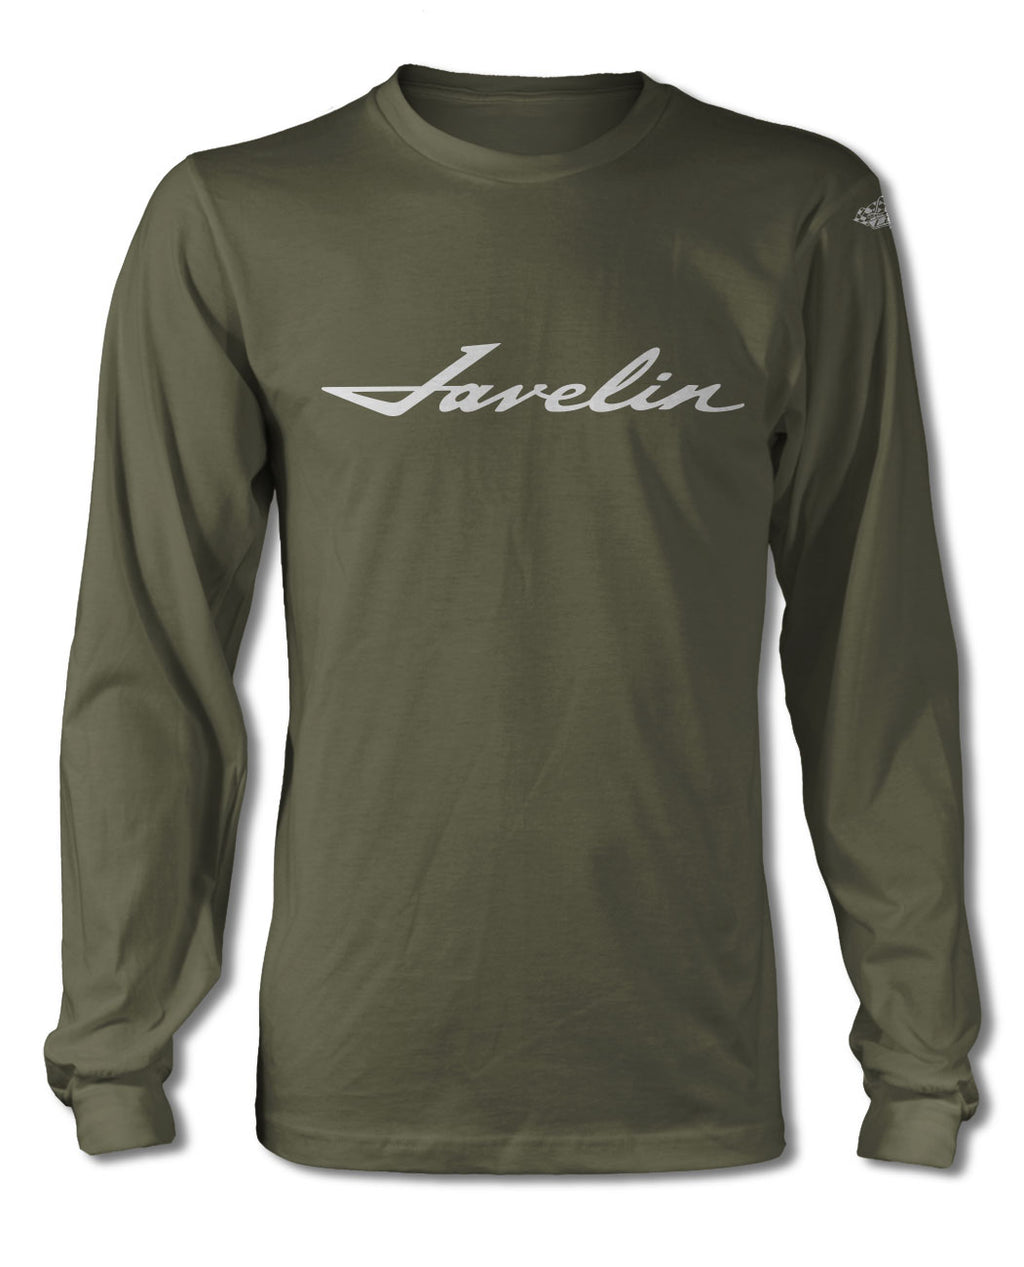 1968 - 1974 AMC Javelin Emblem T-Shirt - Long Sleeves - Emblem